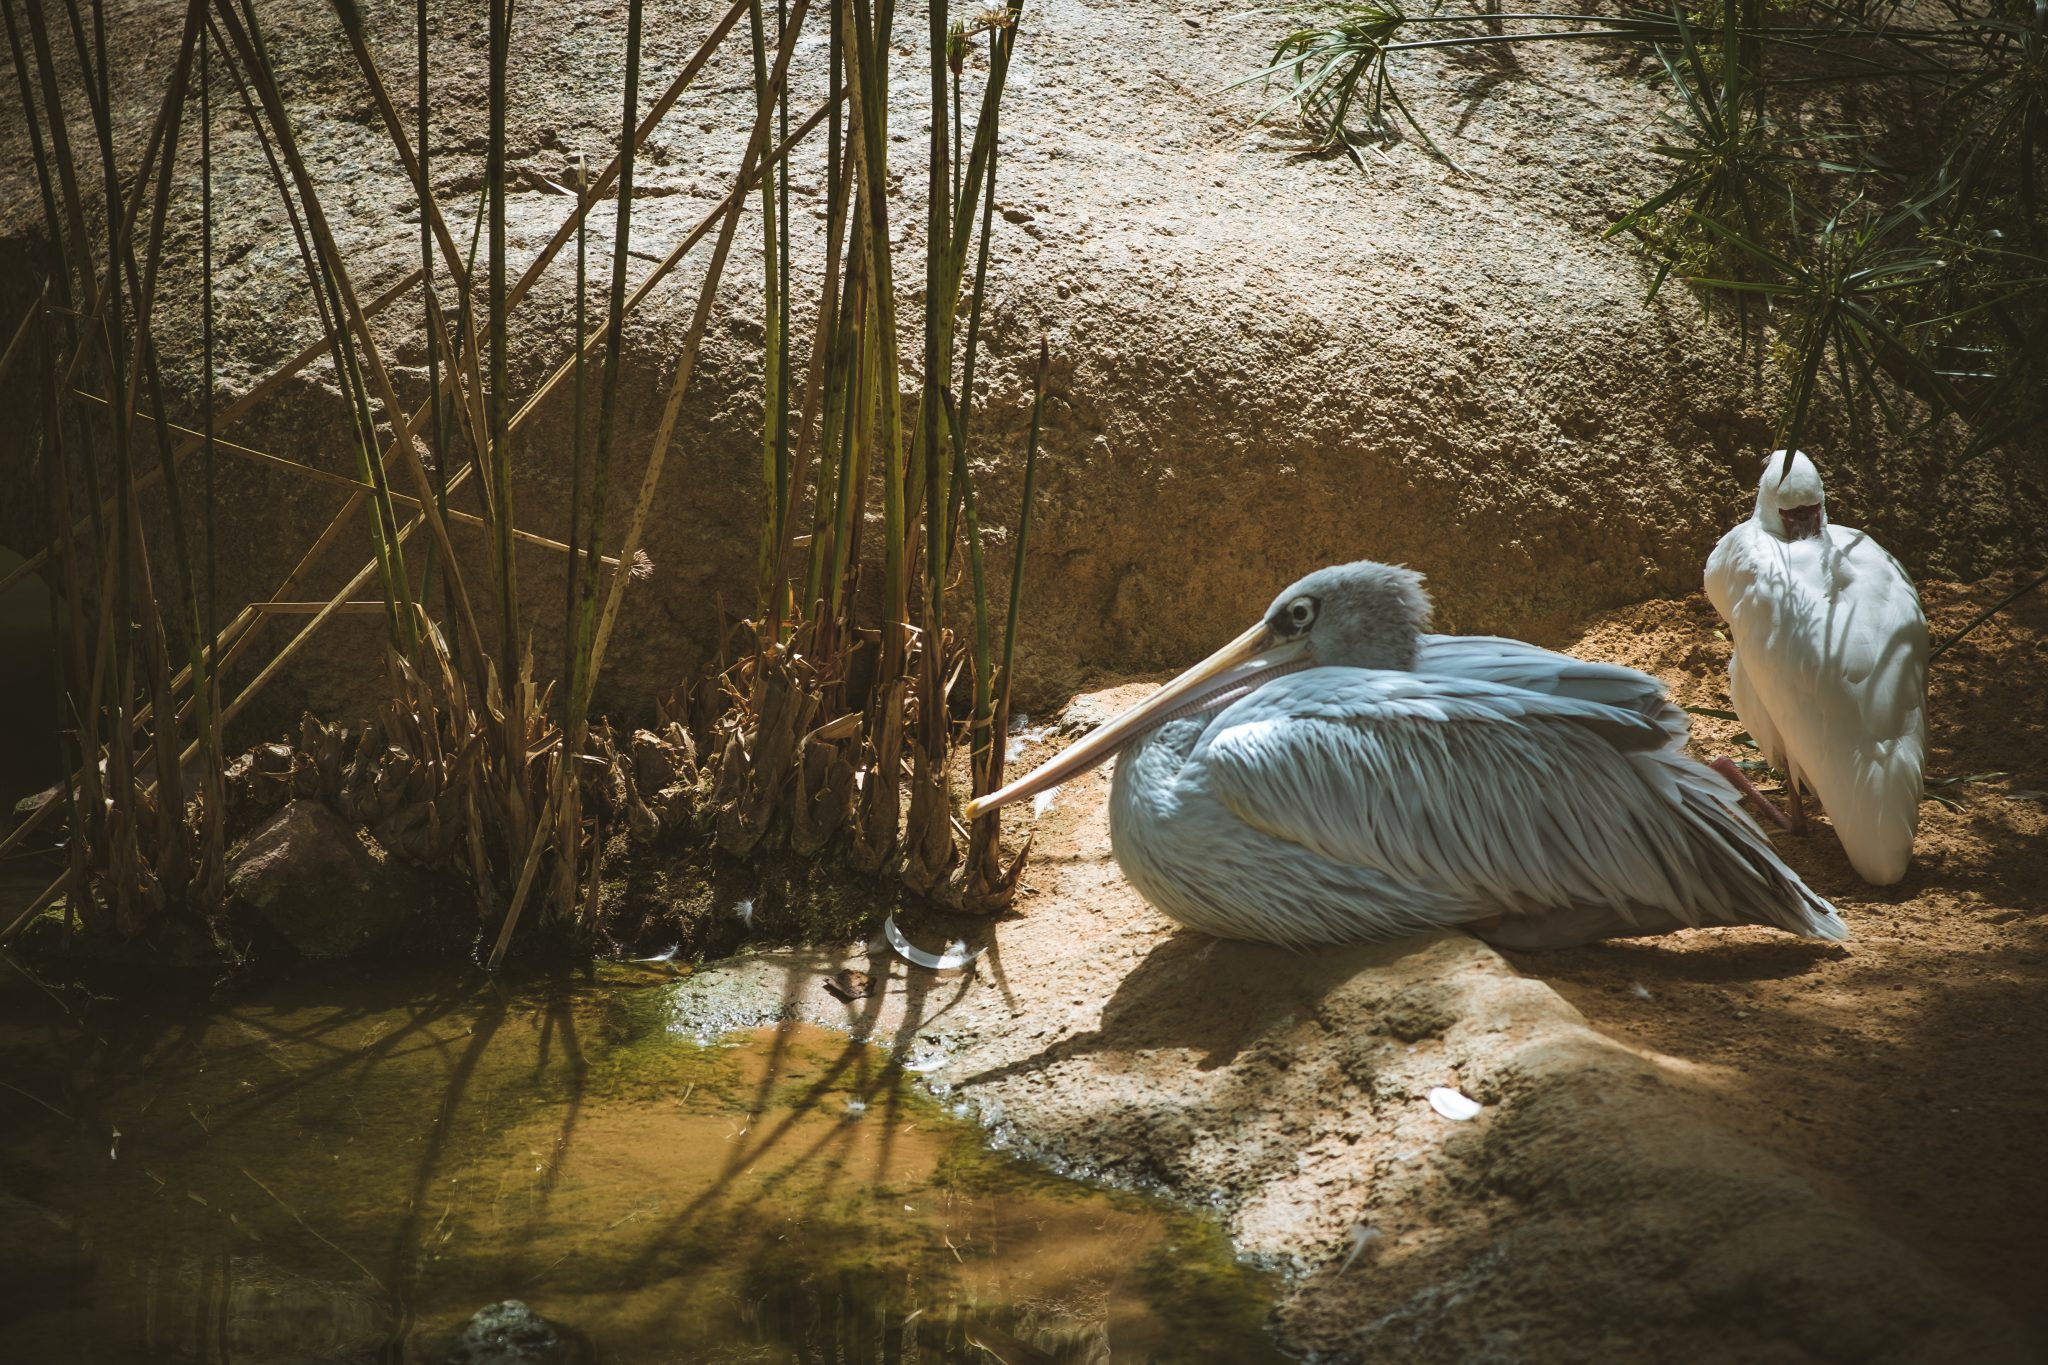 Two birds relaxing by a lake on a sunny day photo by Jo Kassis